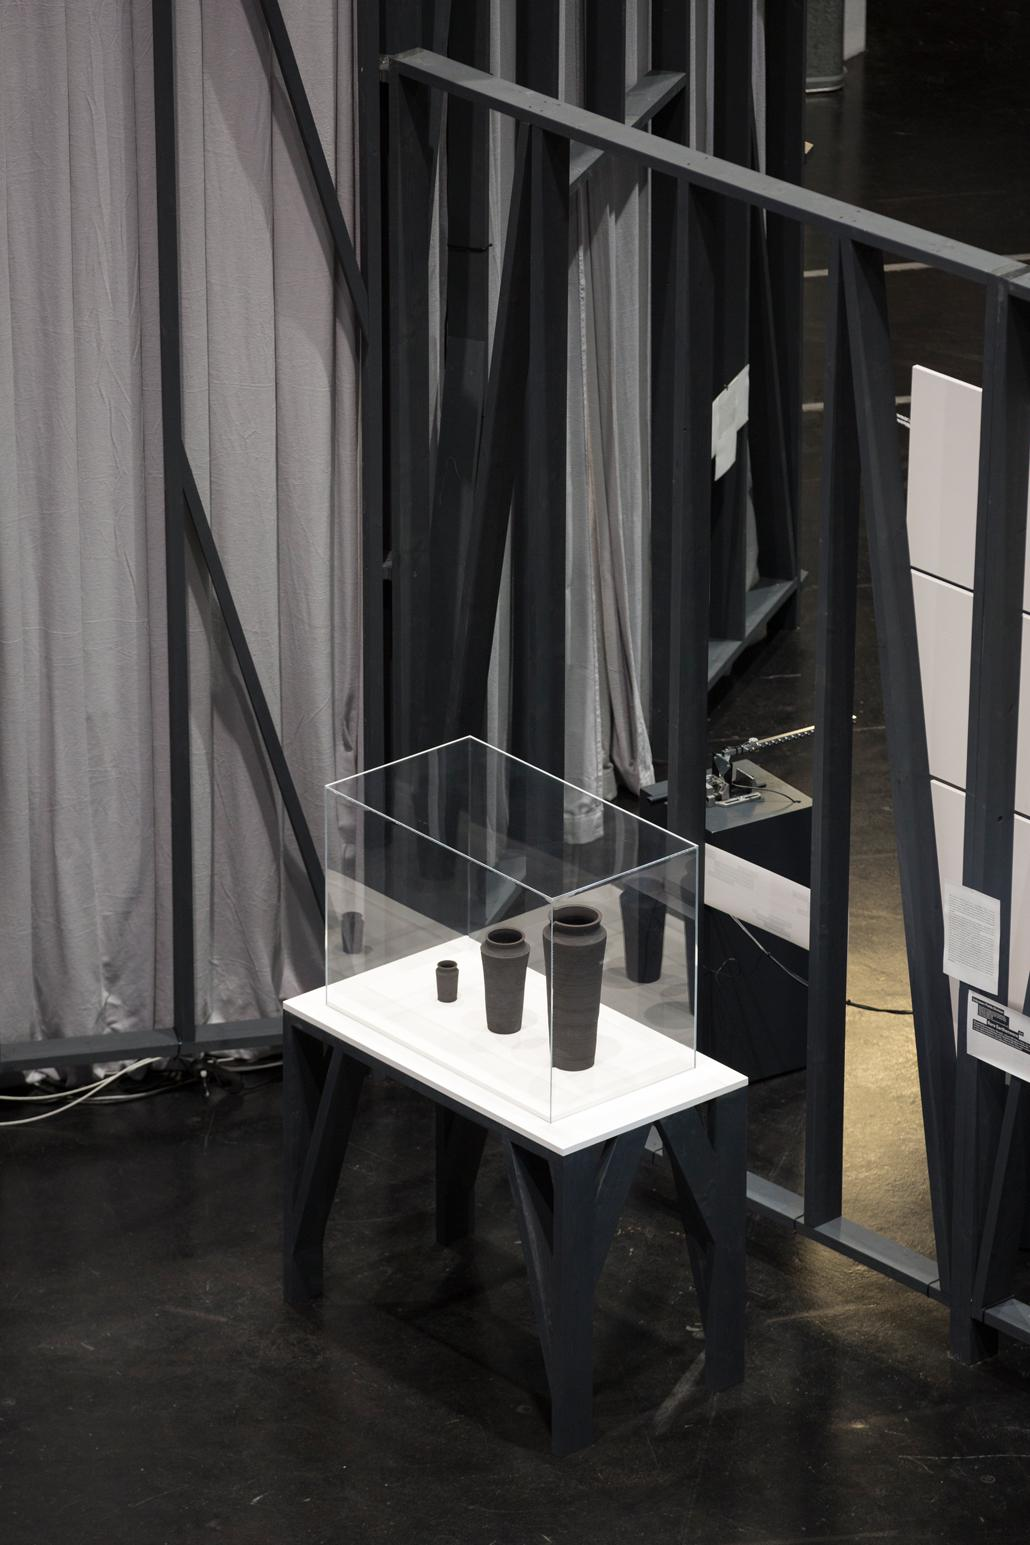 Three gray vases in different sizes in a showcase